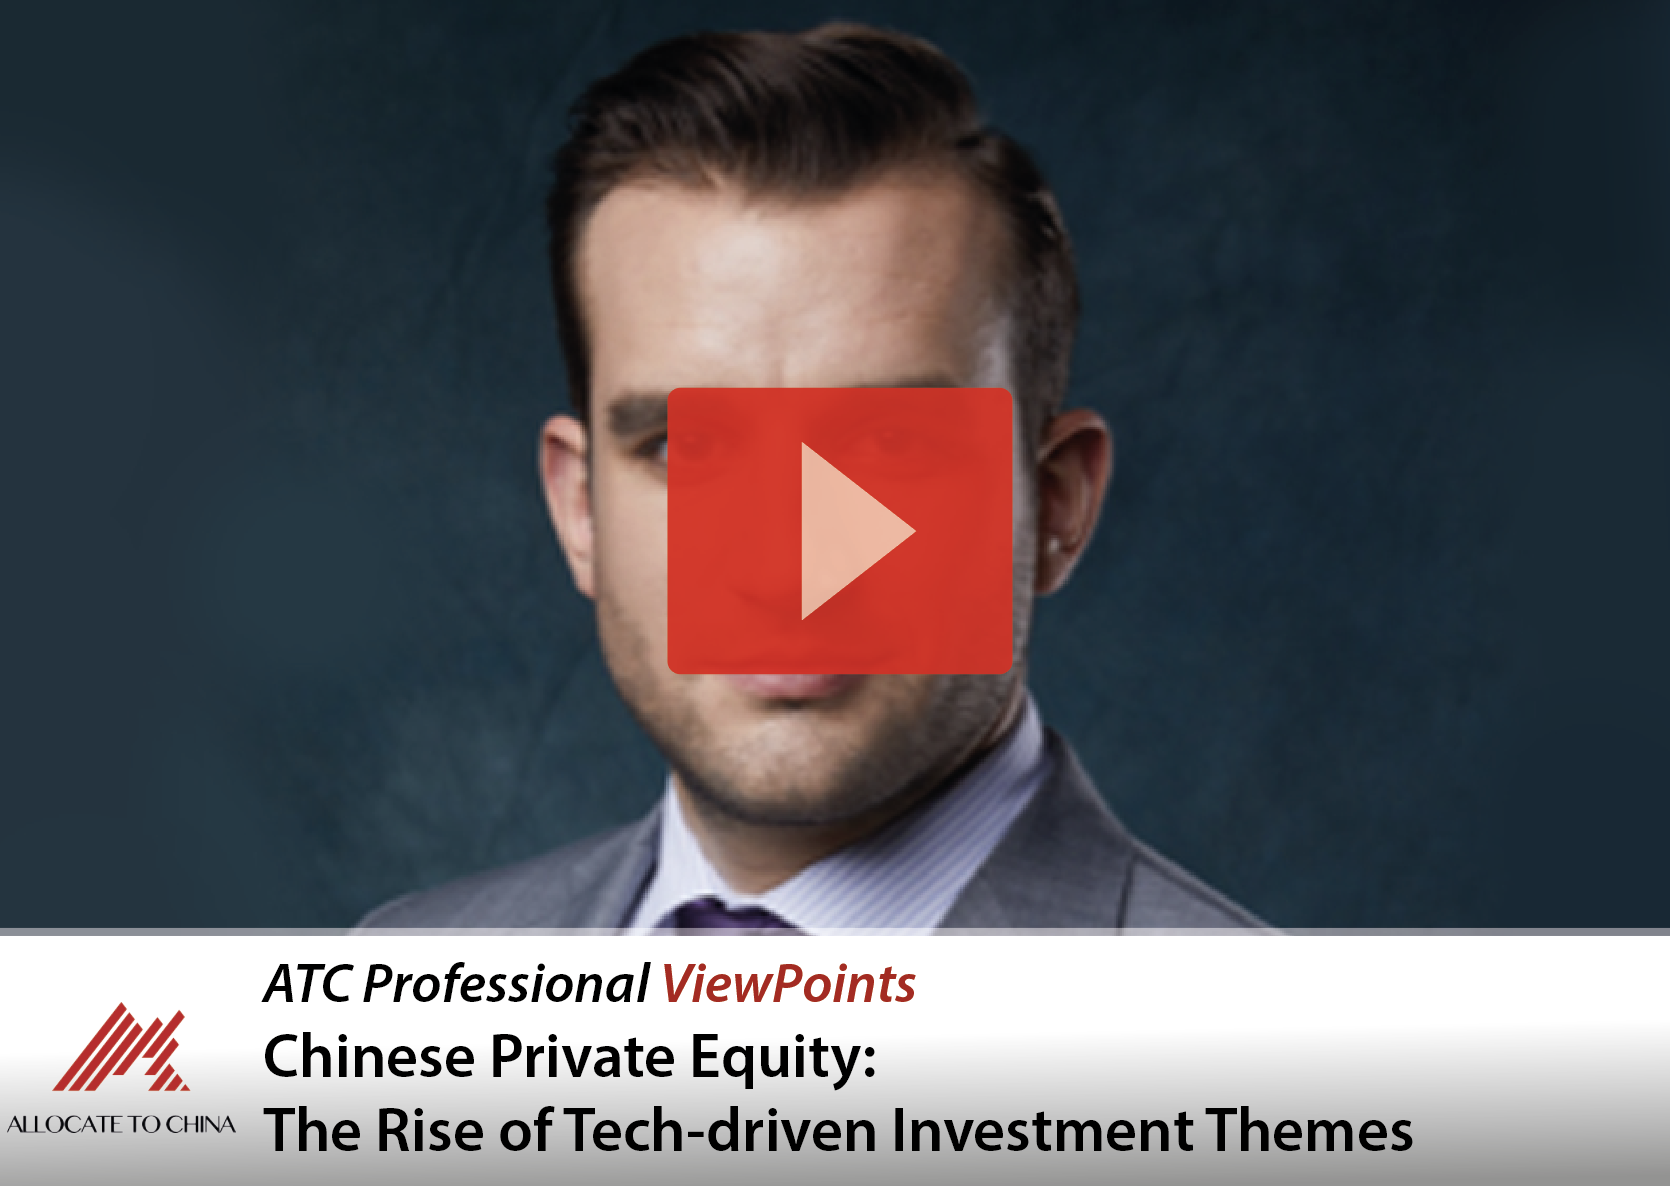 Chinese Private Equity: The Rise of Tech-driven Investment Themes